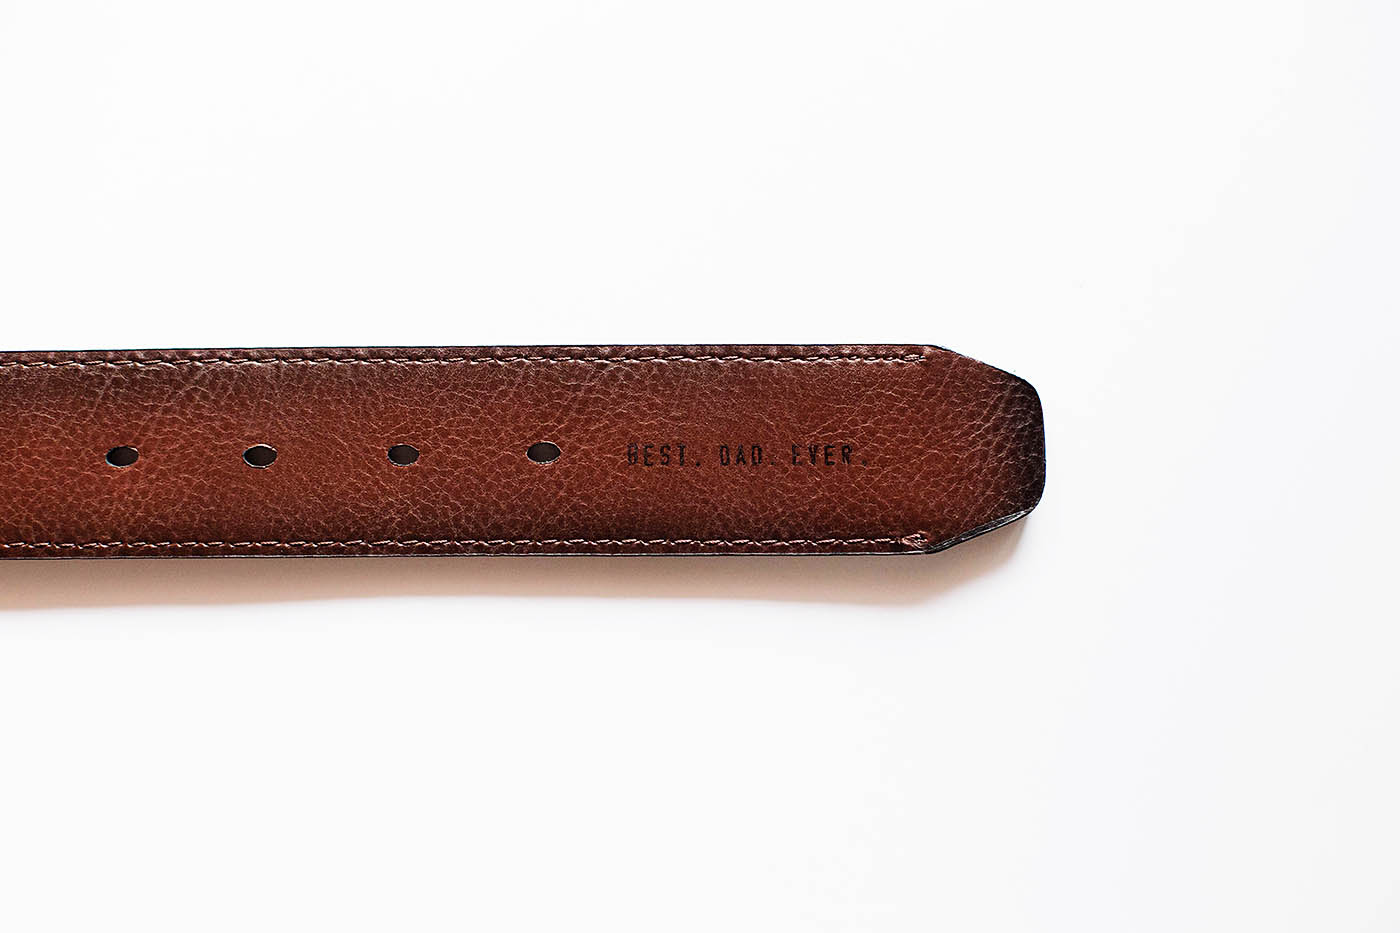 Levi's® Father's Day gift idea with personalized belt